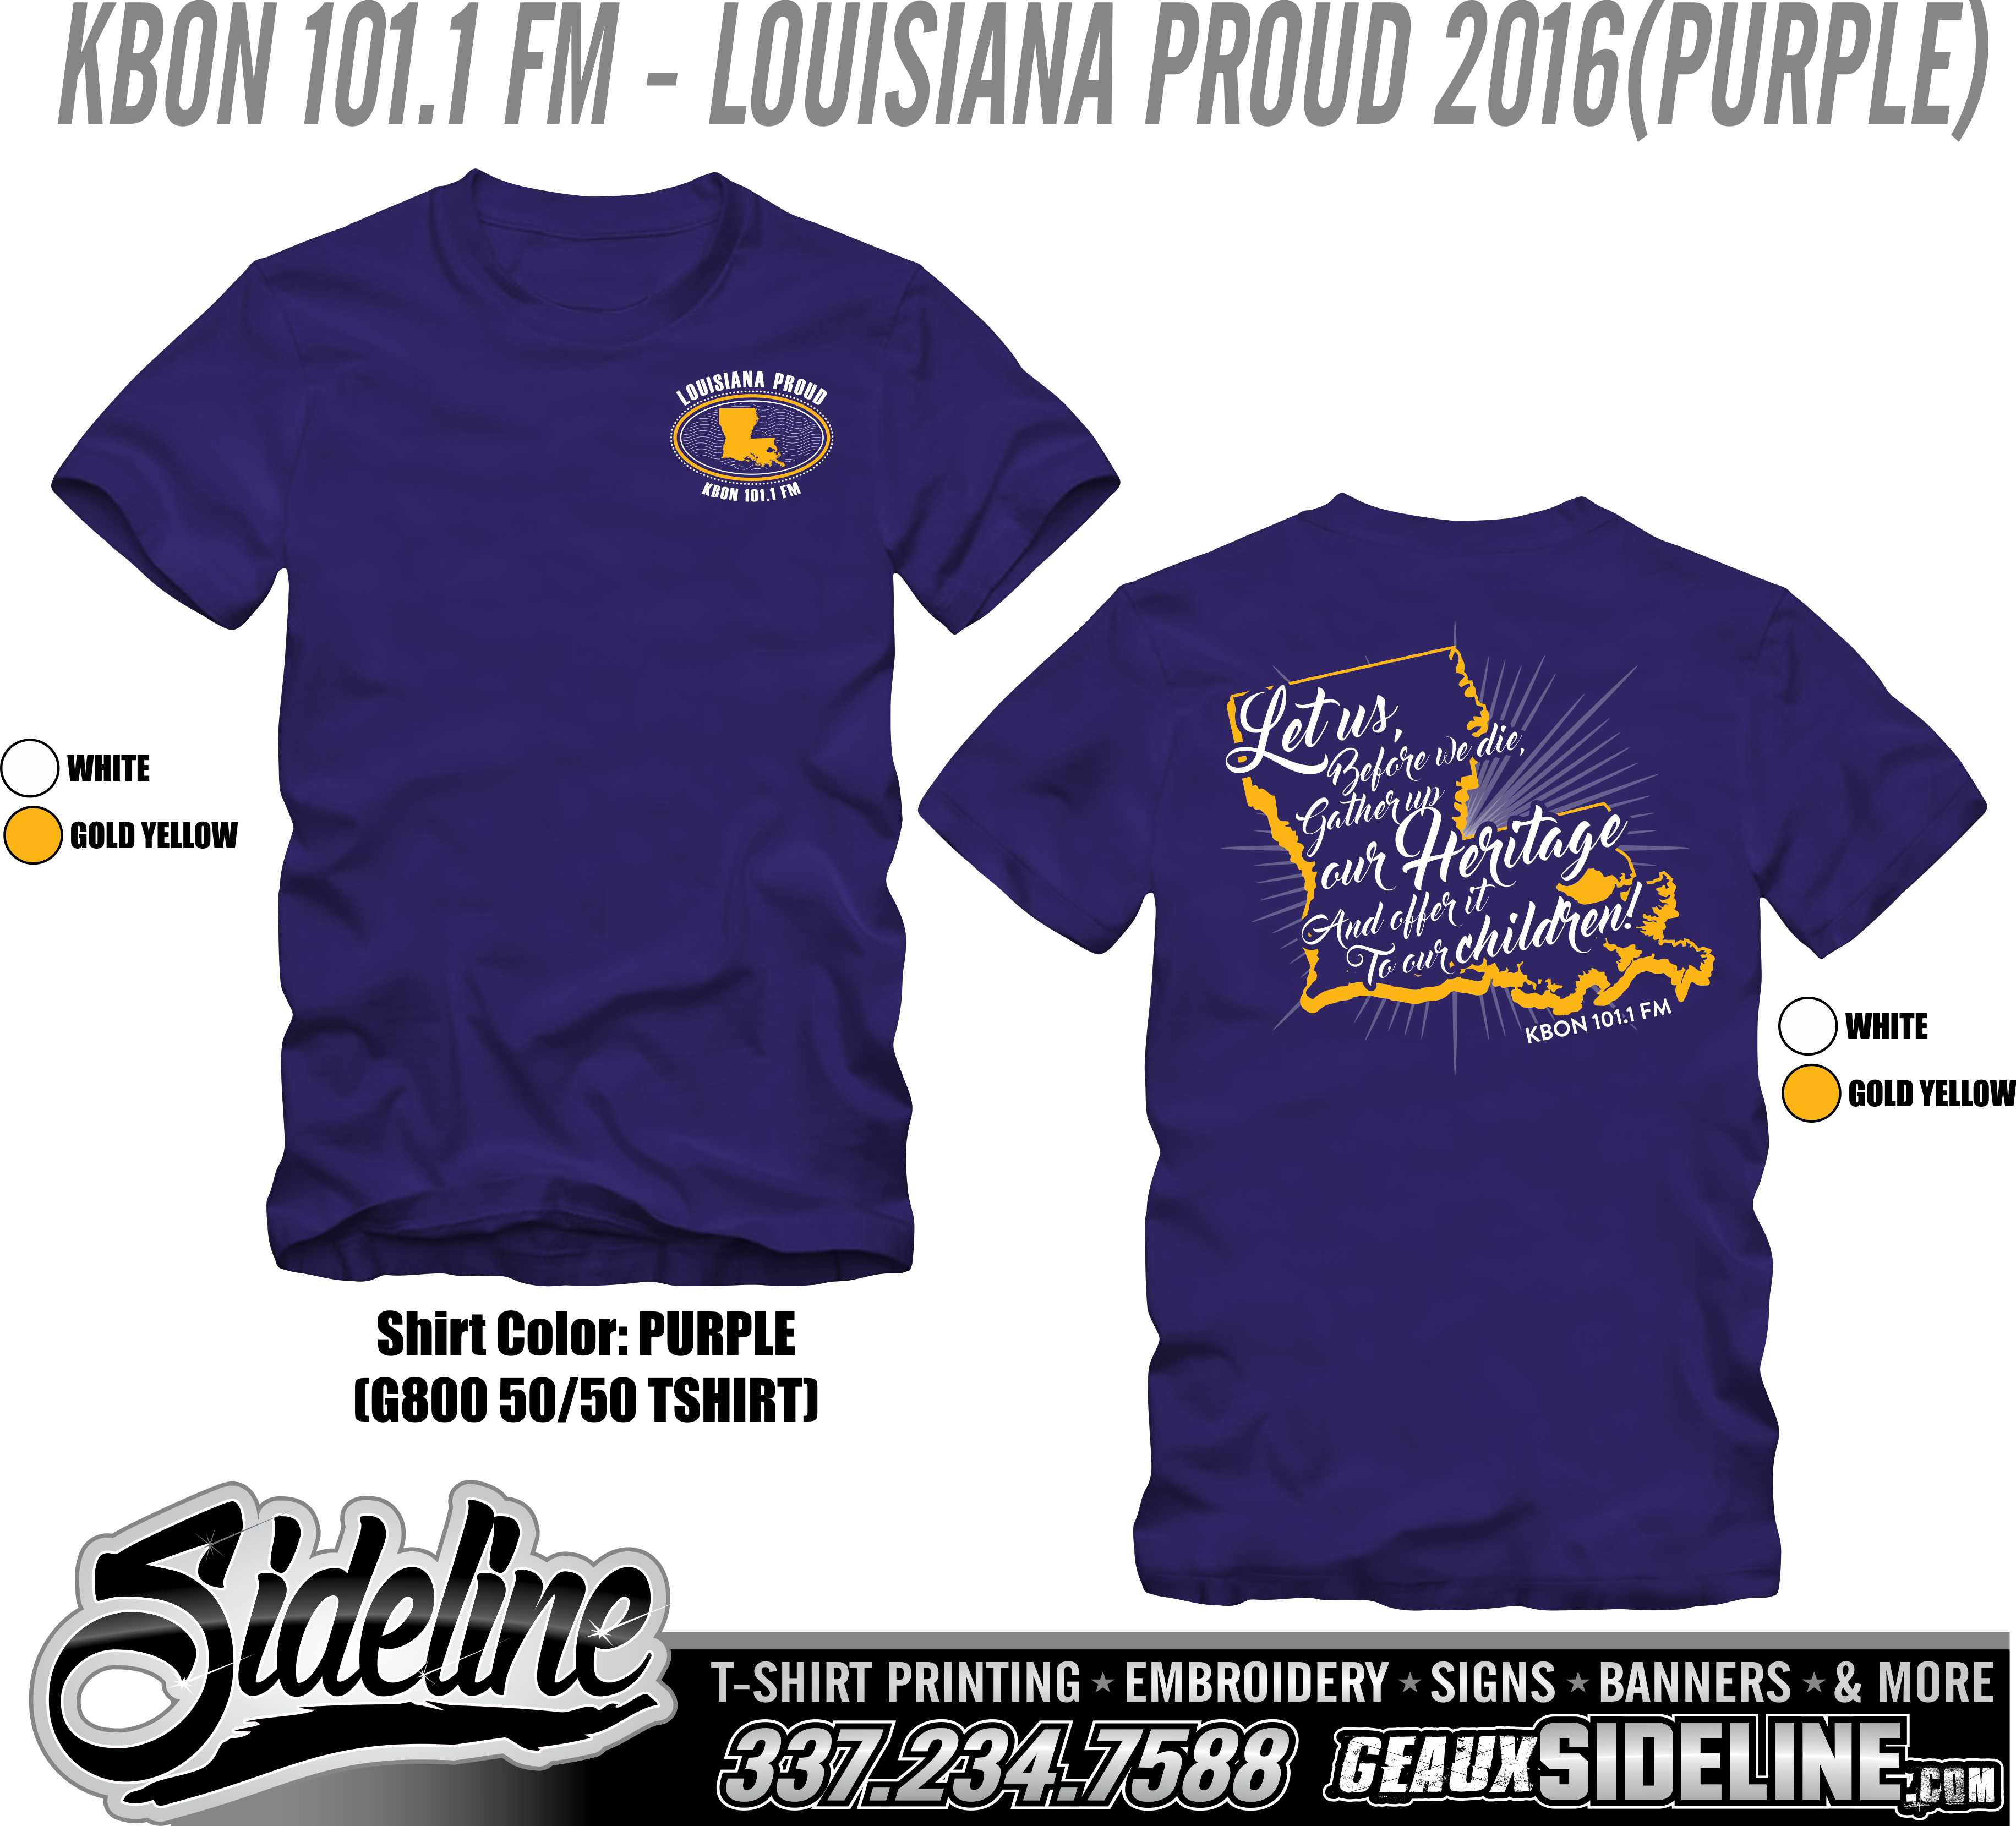 KBON 101.1 FM - LOUISIANA PROUD 2016 (PURPLE)